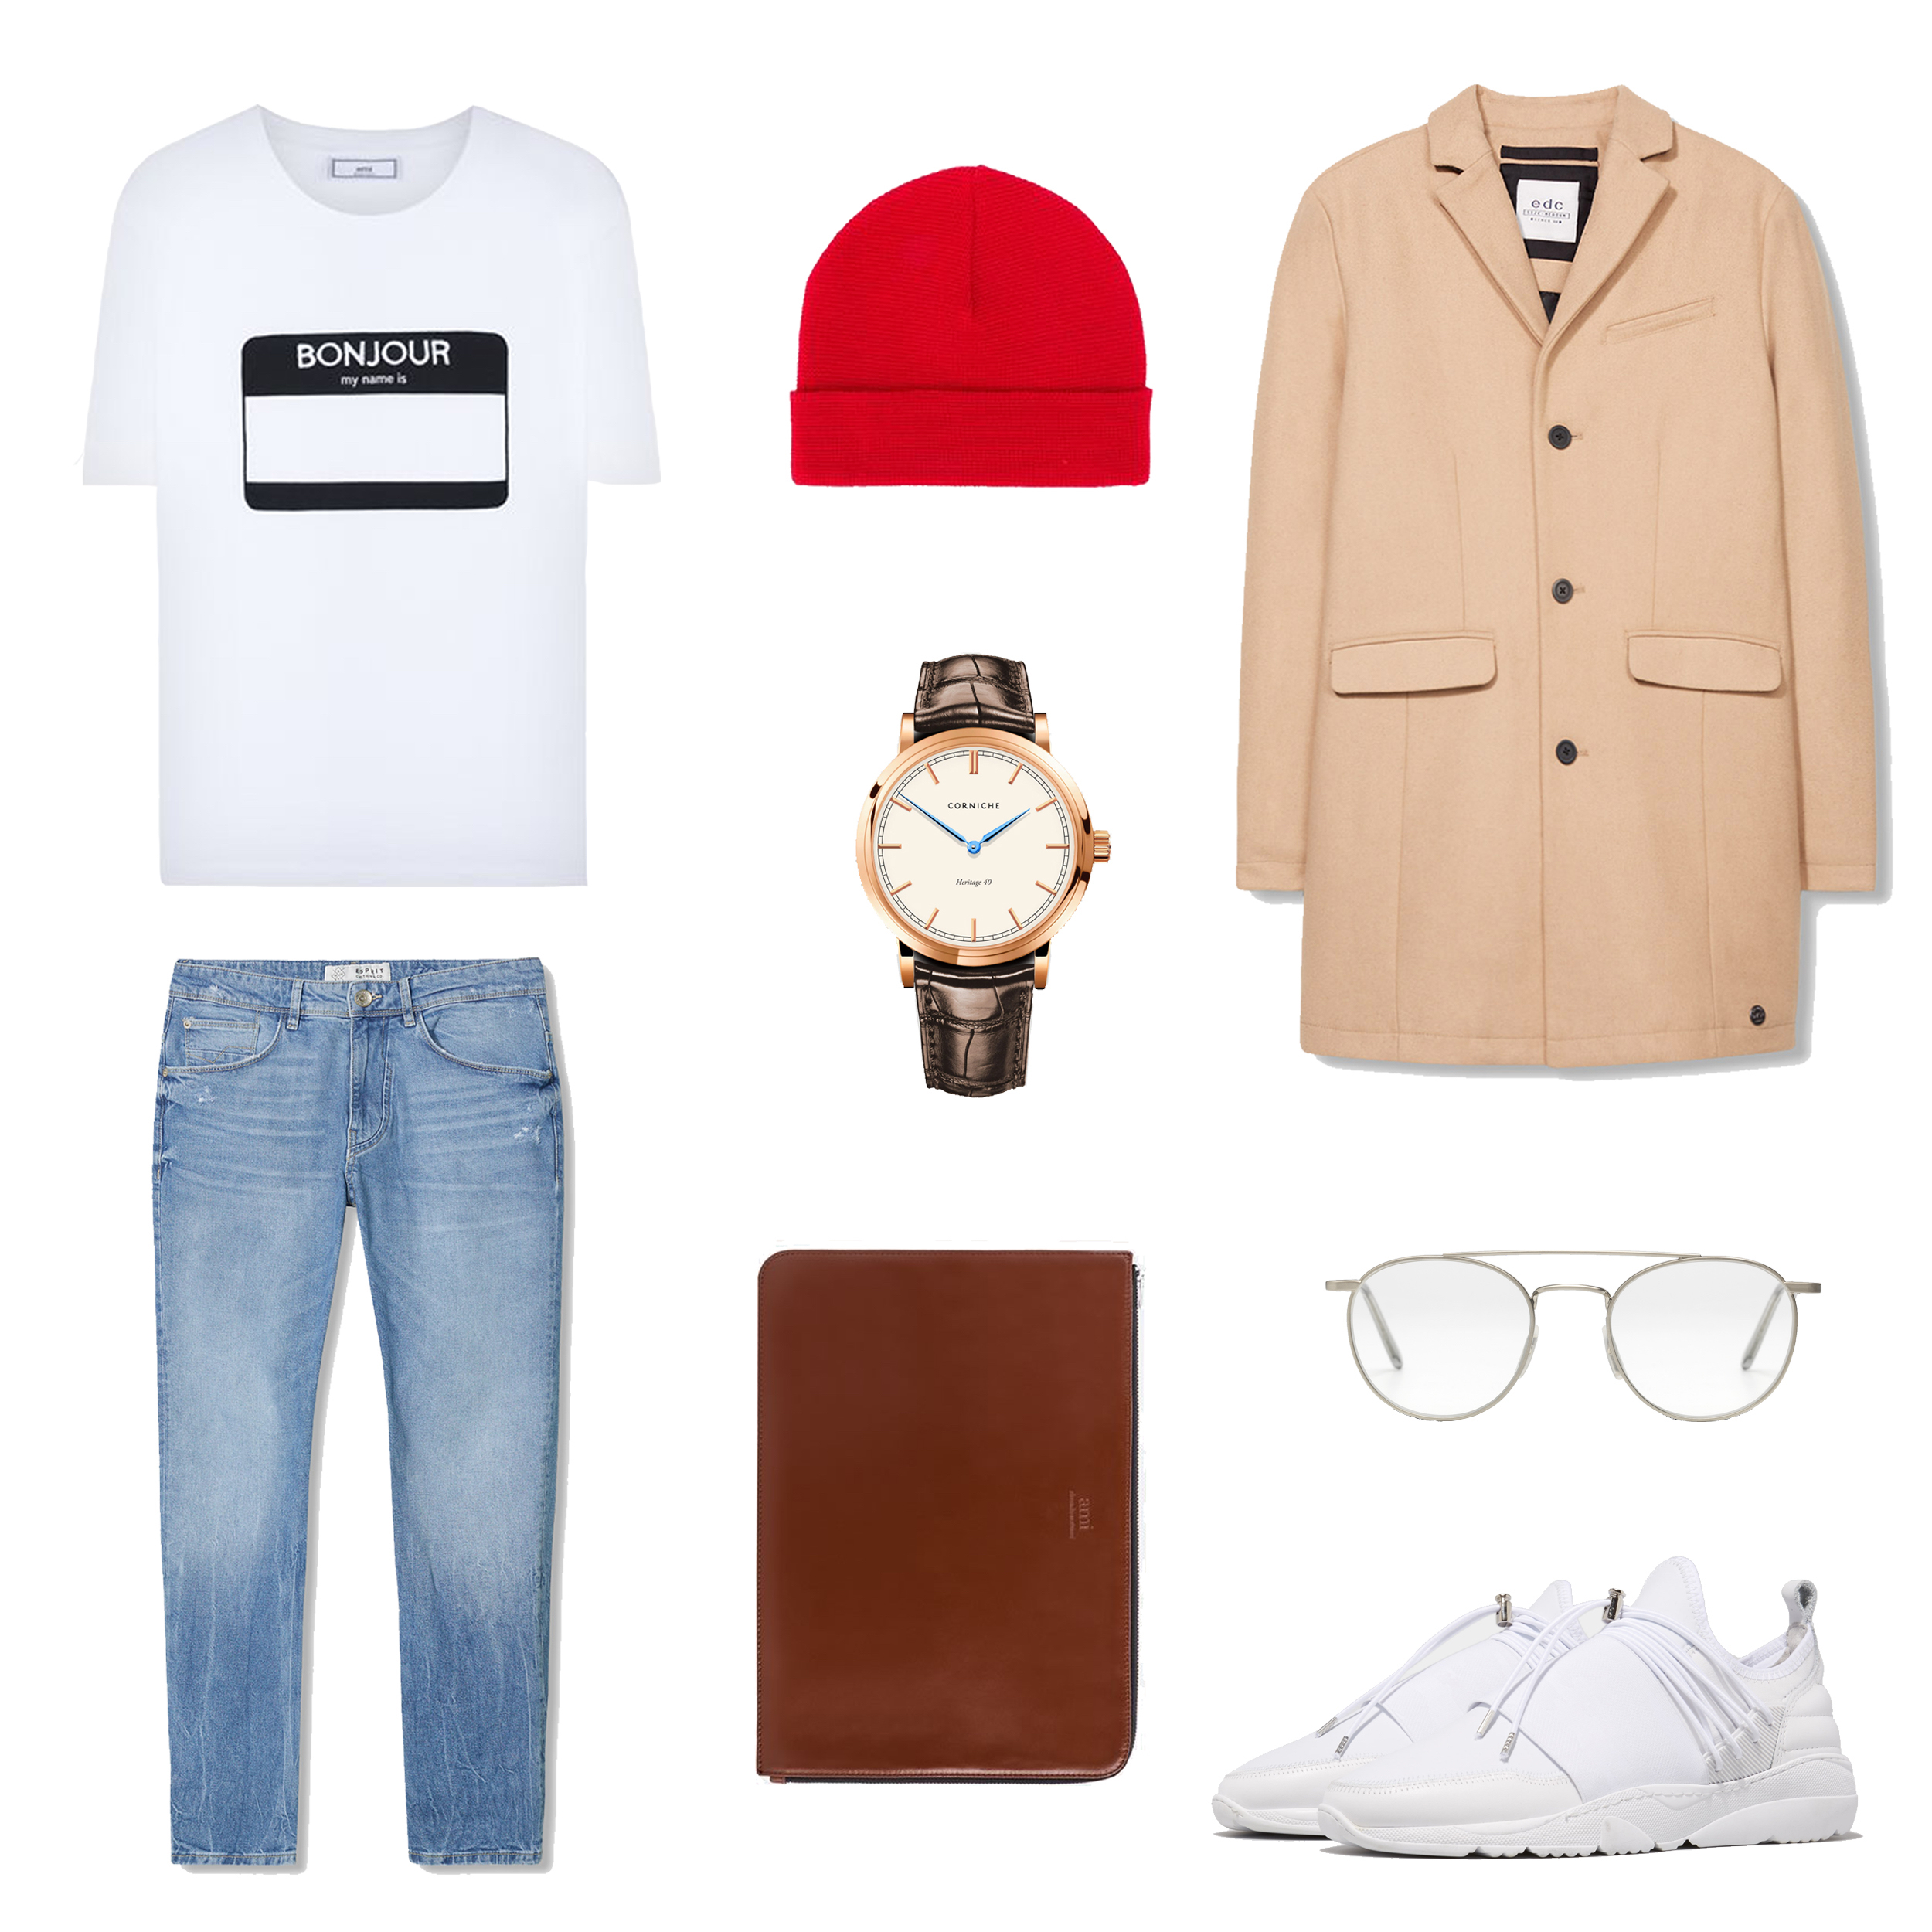 fall-trends-for-men-camel-coat-and-denim-esprit-ami-paris-meanwhile-in-awesometown-austrian-mens-fashion-and-styleblogger